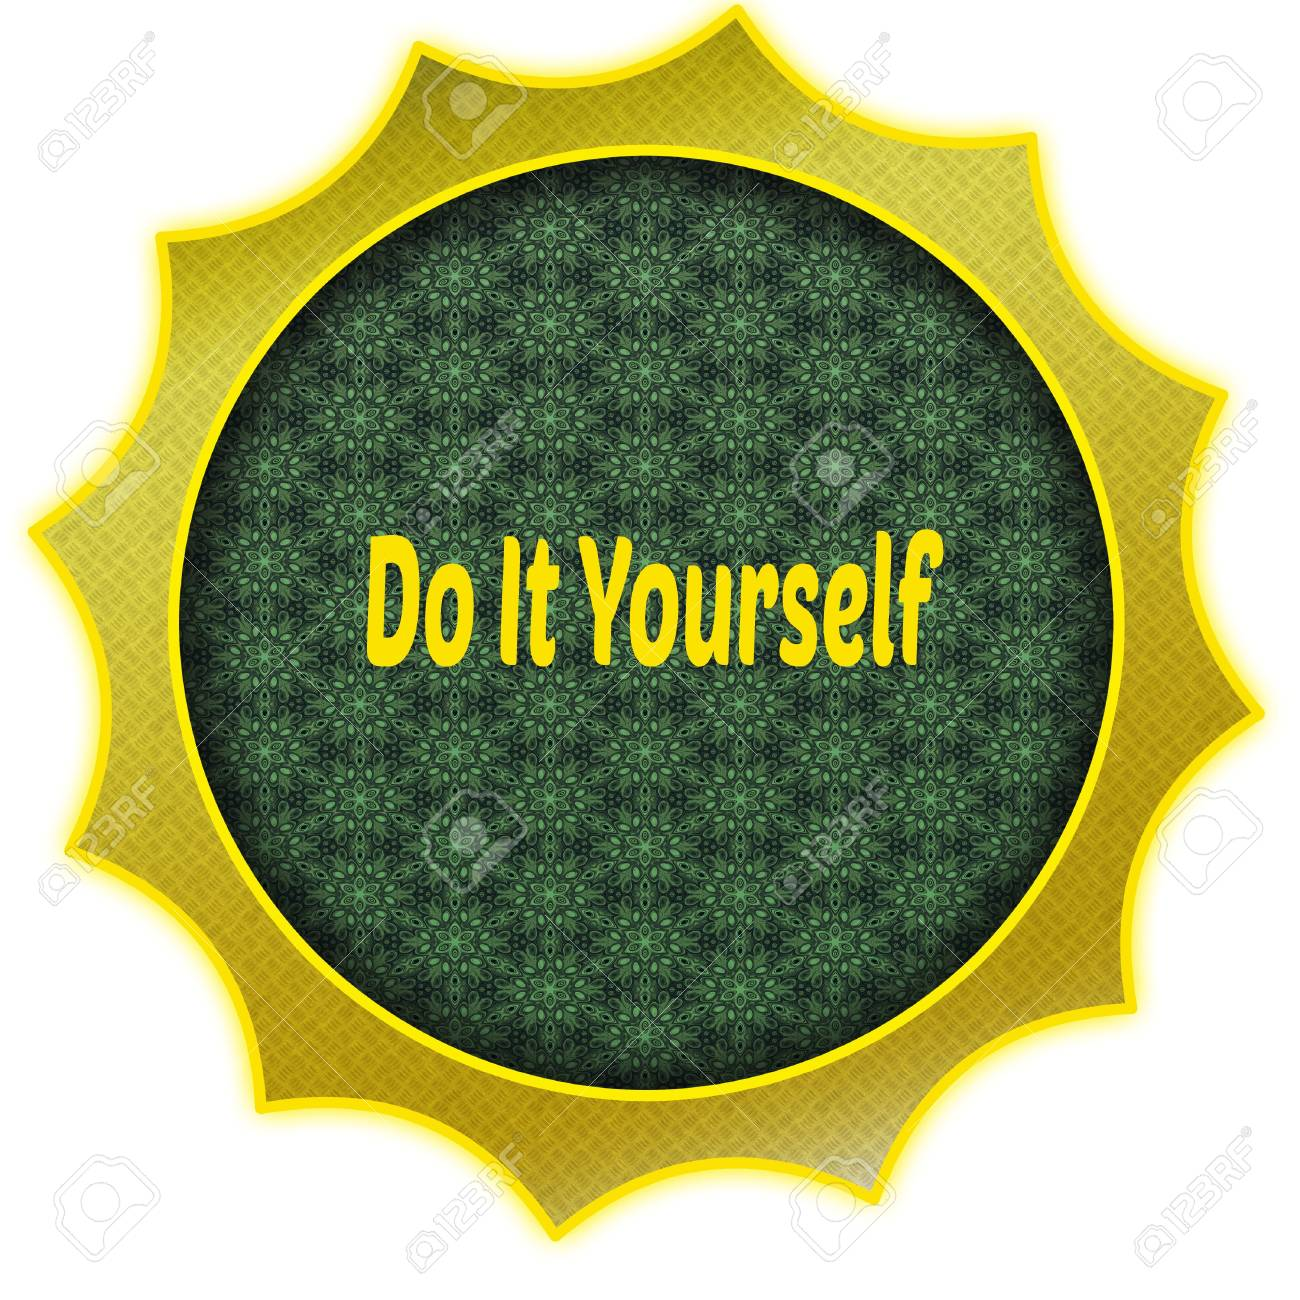 Golden badge with do it yourself text illustration graphic design golden badge with do it yourself text illustration graphic design concept image stock illustration solutioingenieria Image collections